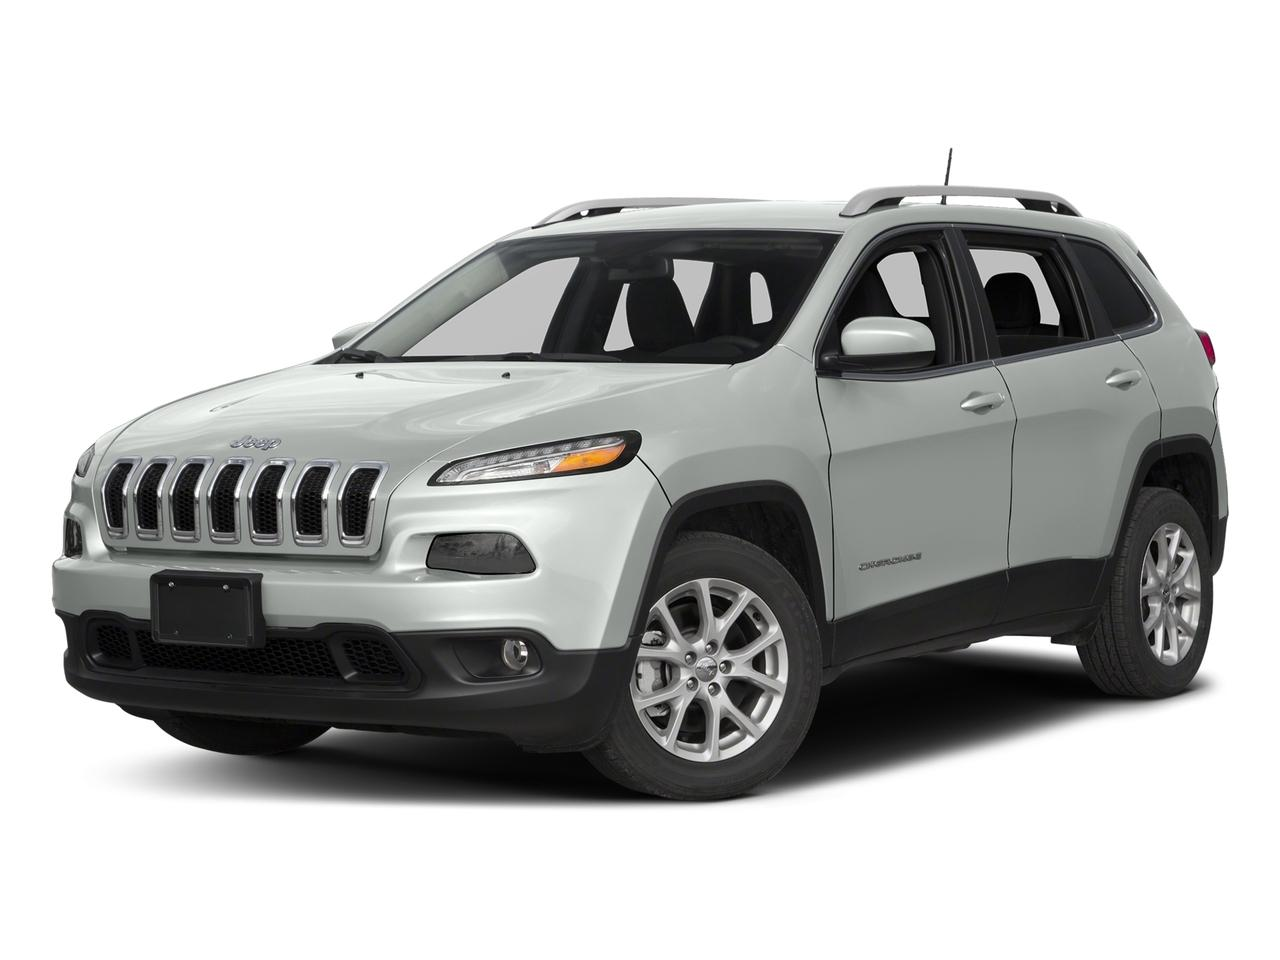 2016 Jeep Cherokee Vehicle Photo in Terryville, CT 06786